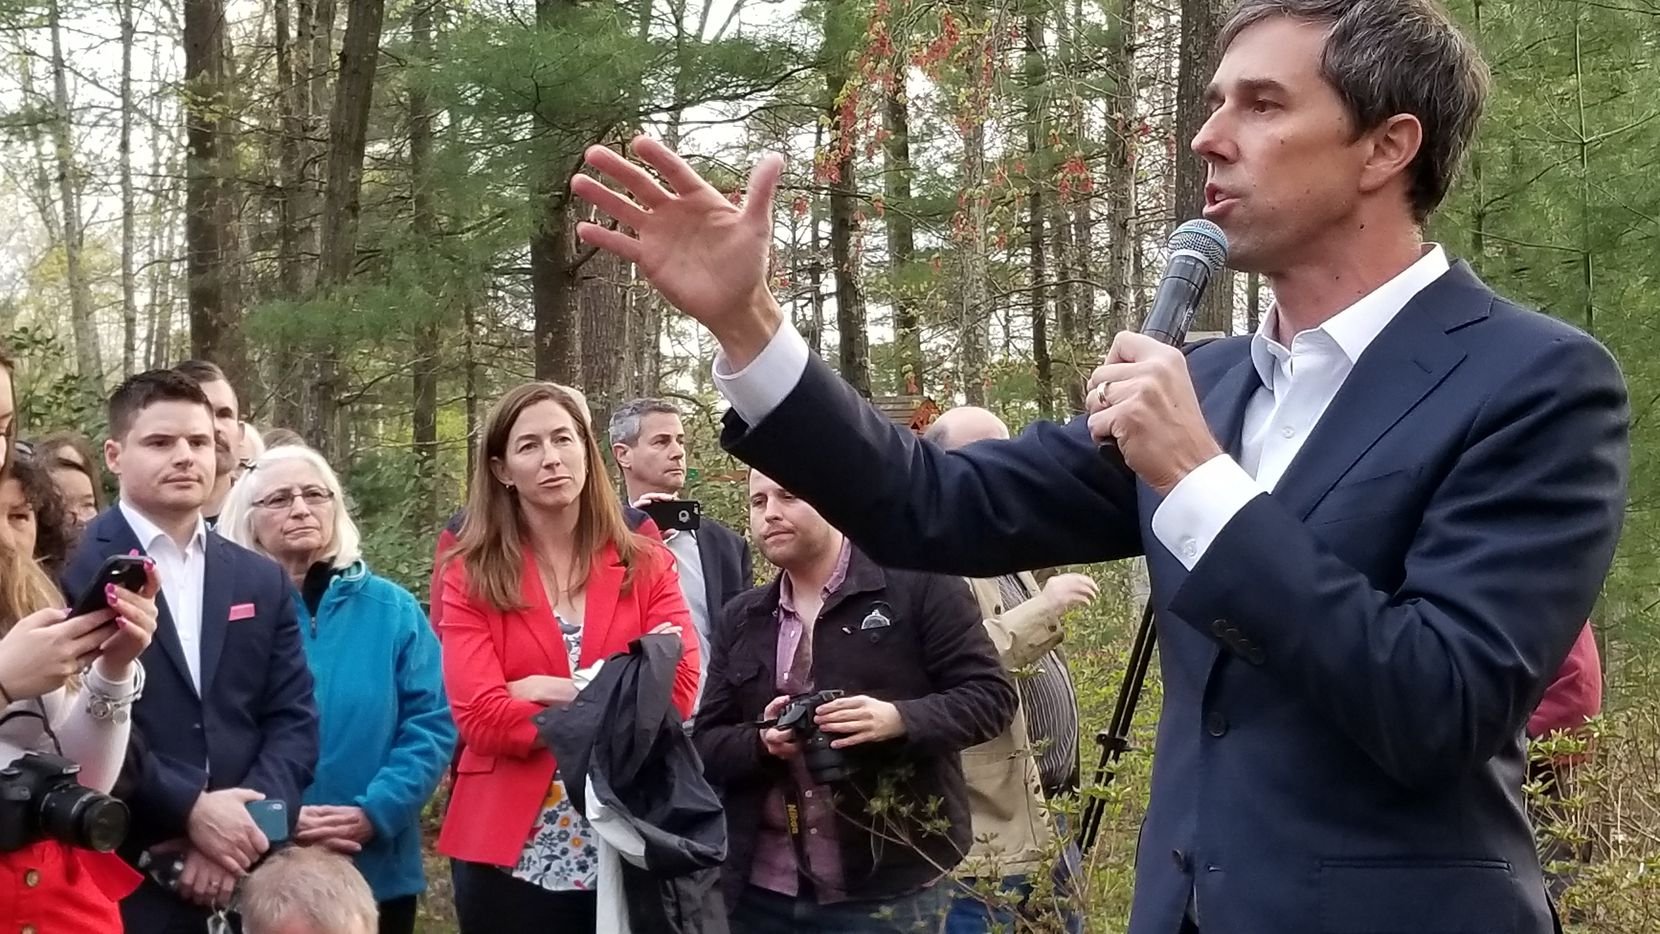 Beto O'Rourke stumped in Salem, N.H., on Thursday as his wife, Amy (in red jacket) looks on.